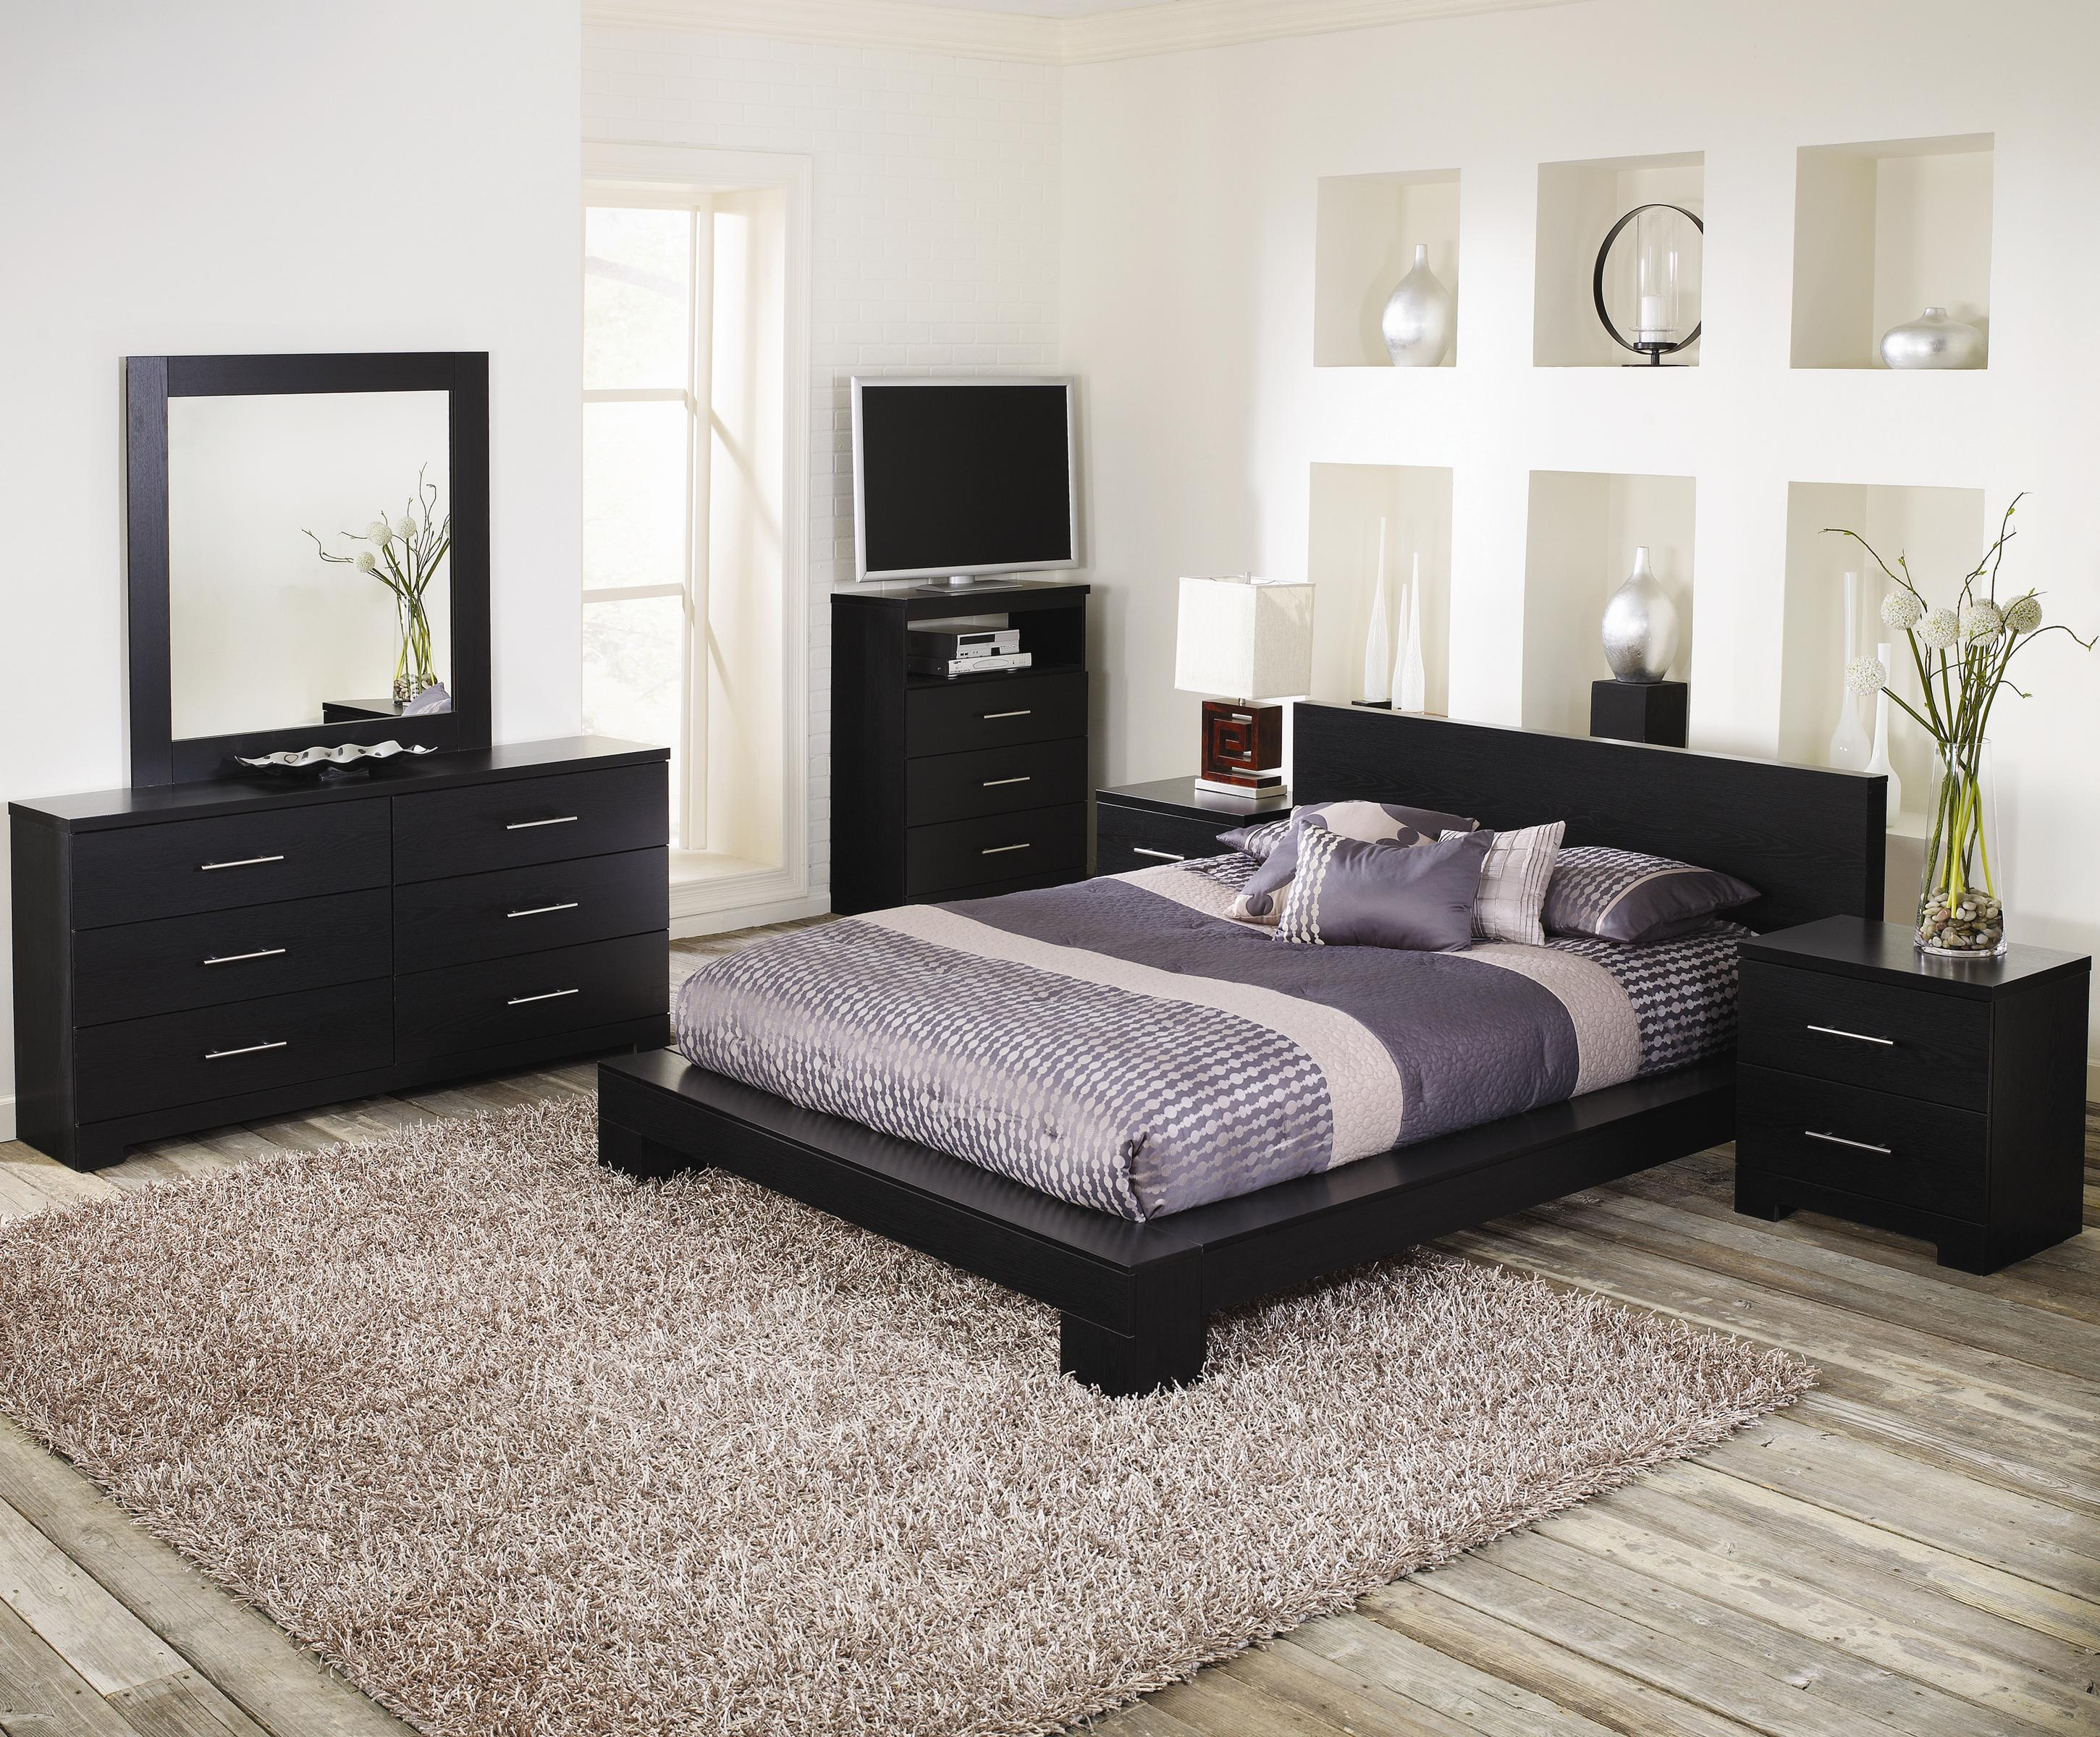 to customizable images set about bedroom queen sleigh sets pictures including bed and vergara sofia ideas king dreamy twin also platform wayfair for rooms with go blundell best